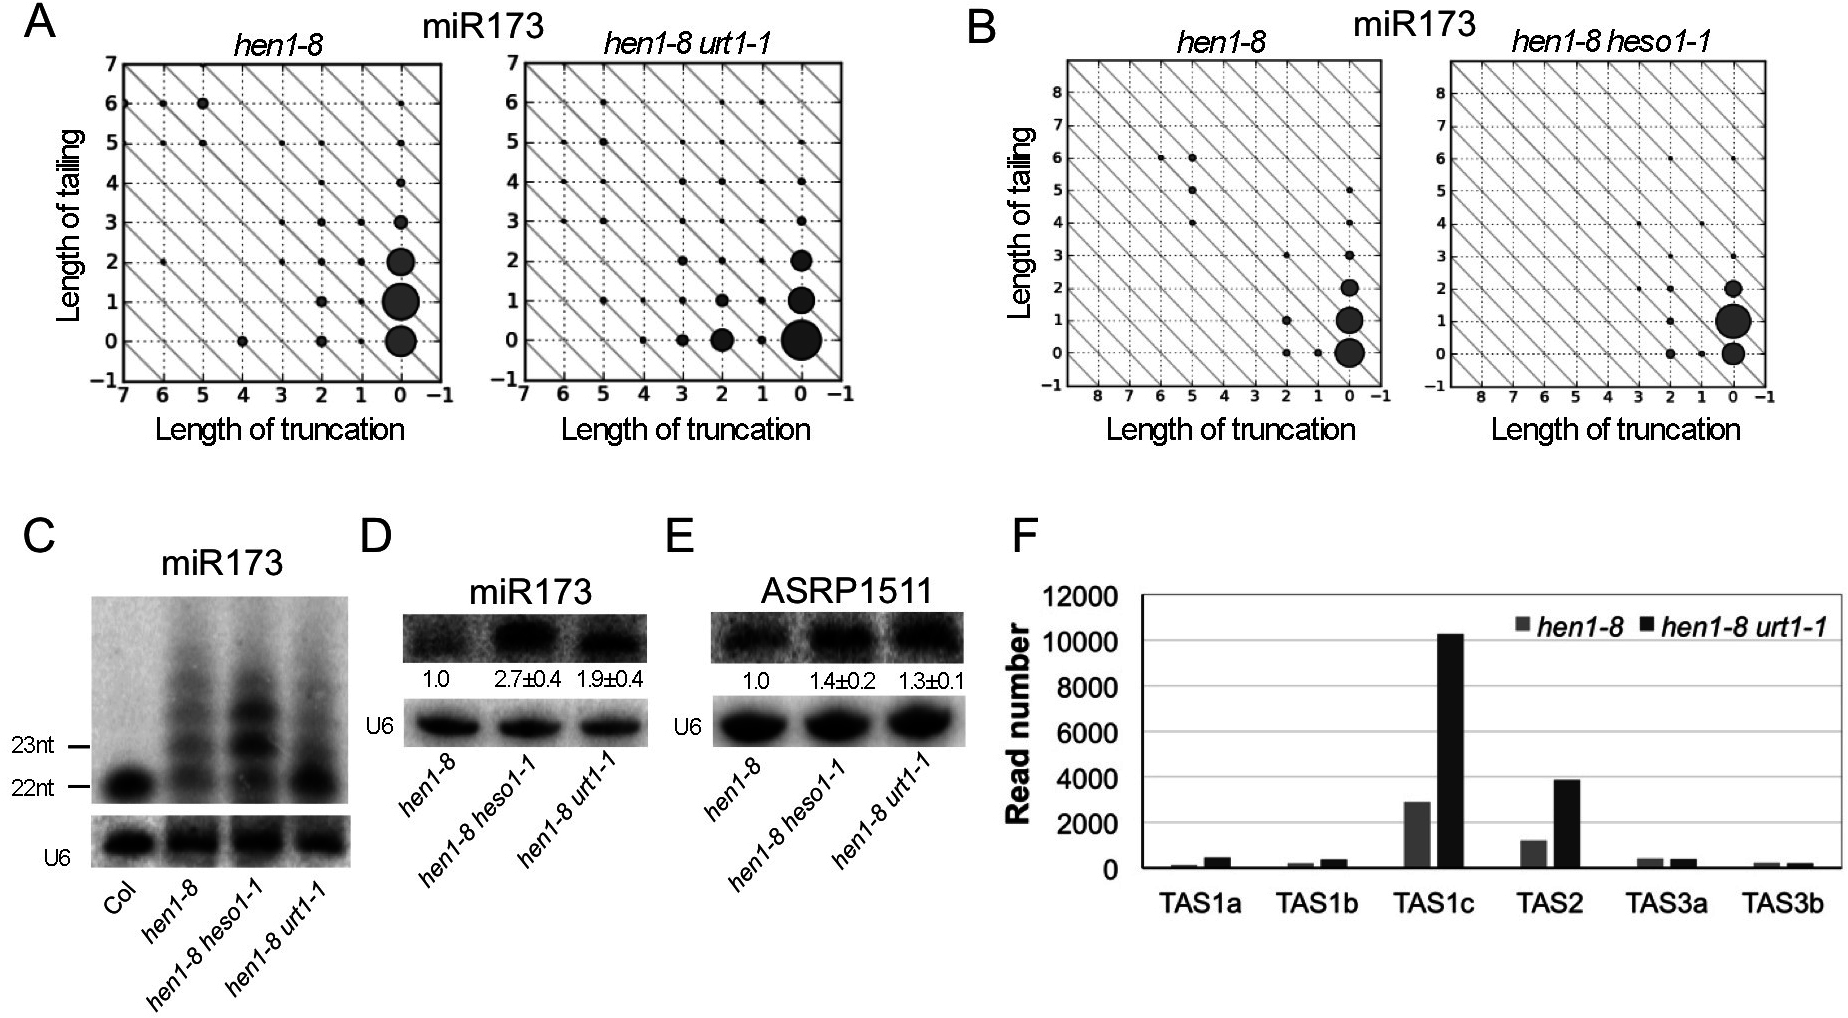 Sequential tailing of miR173 in <i>hen1</i> by URT1 and HESO1 and its impacts on ta-siRNA biogenesis.